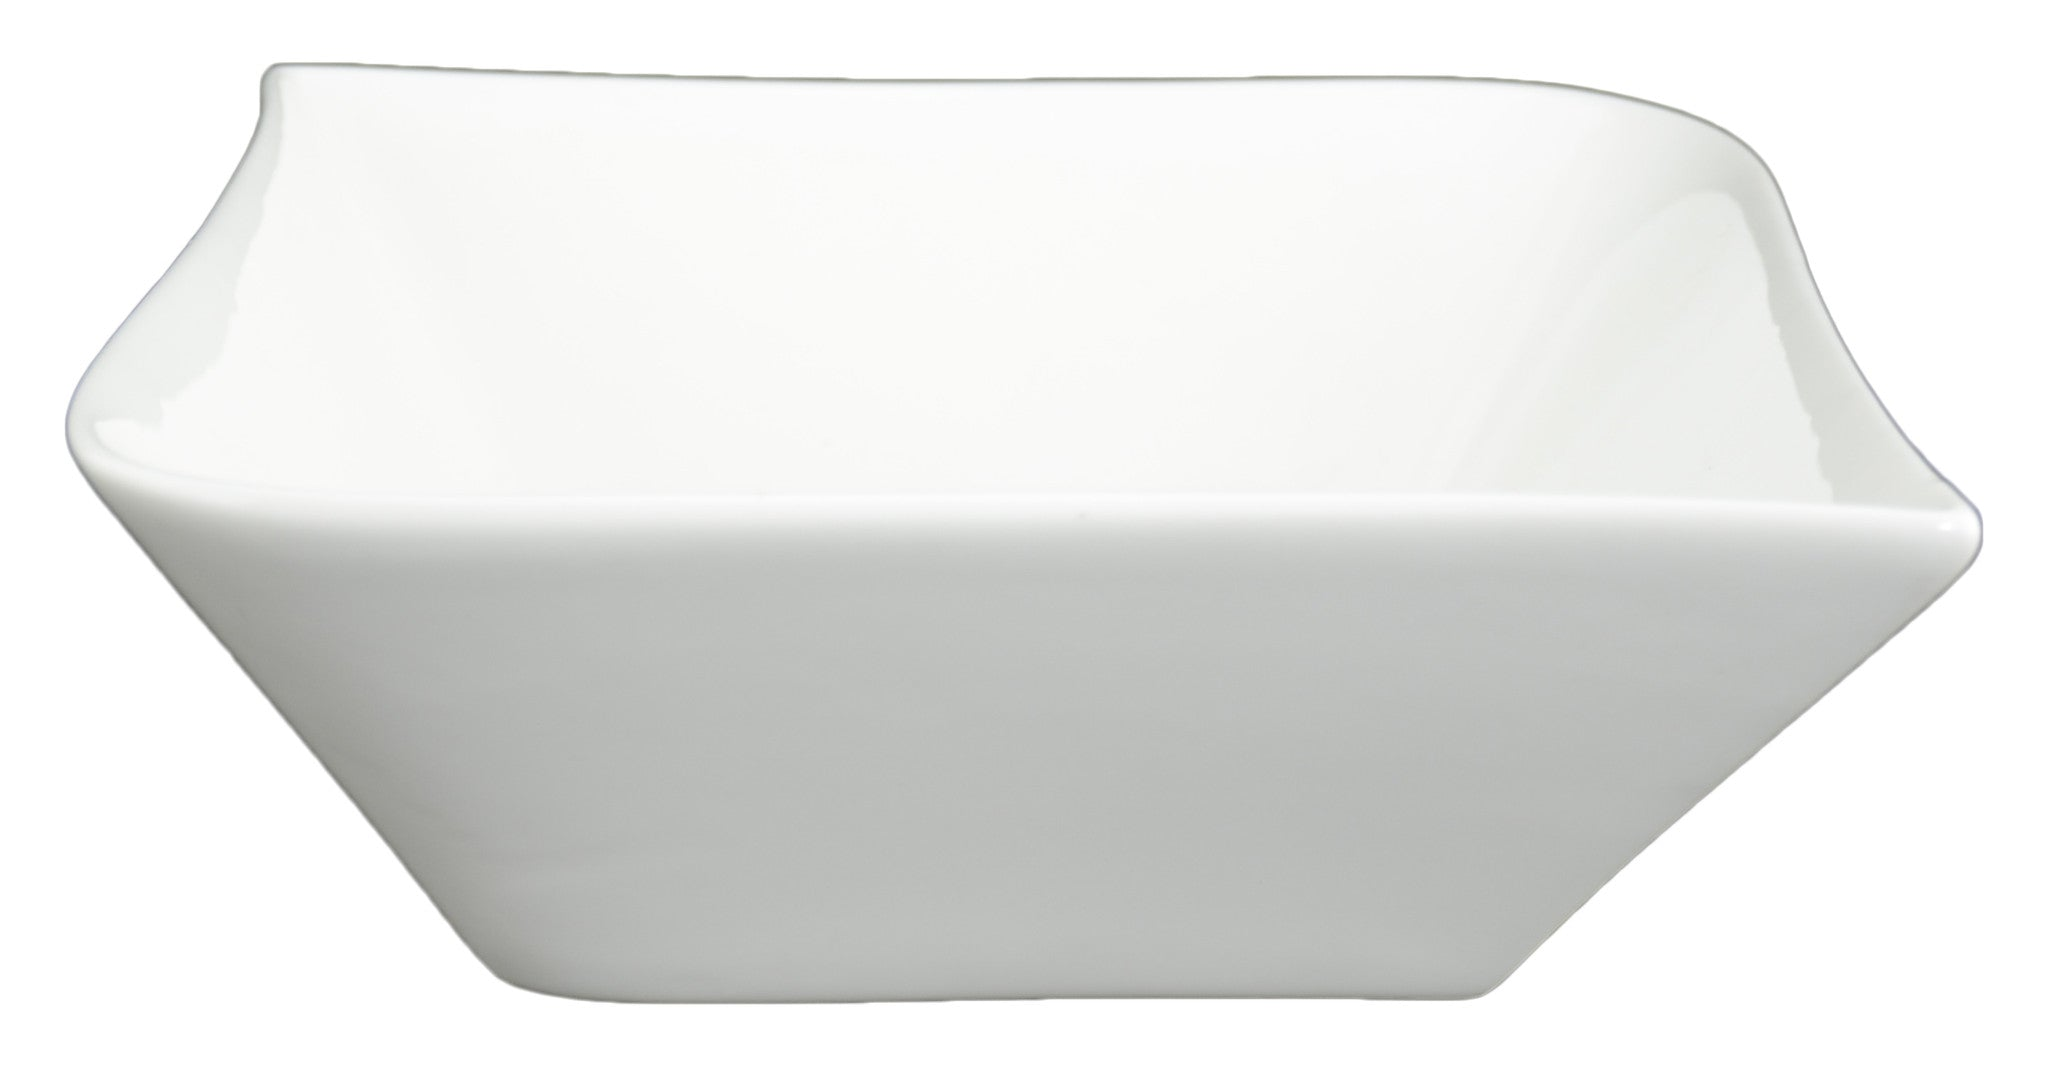 Du Lait Delight Bowl 7 25 By Tannex Kitchen Baron